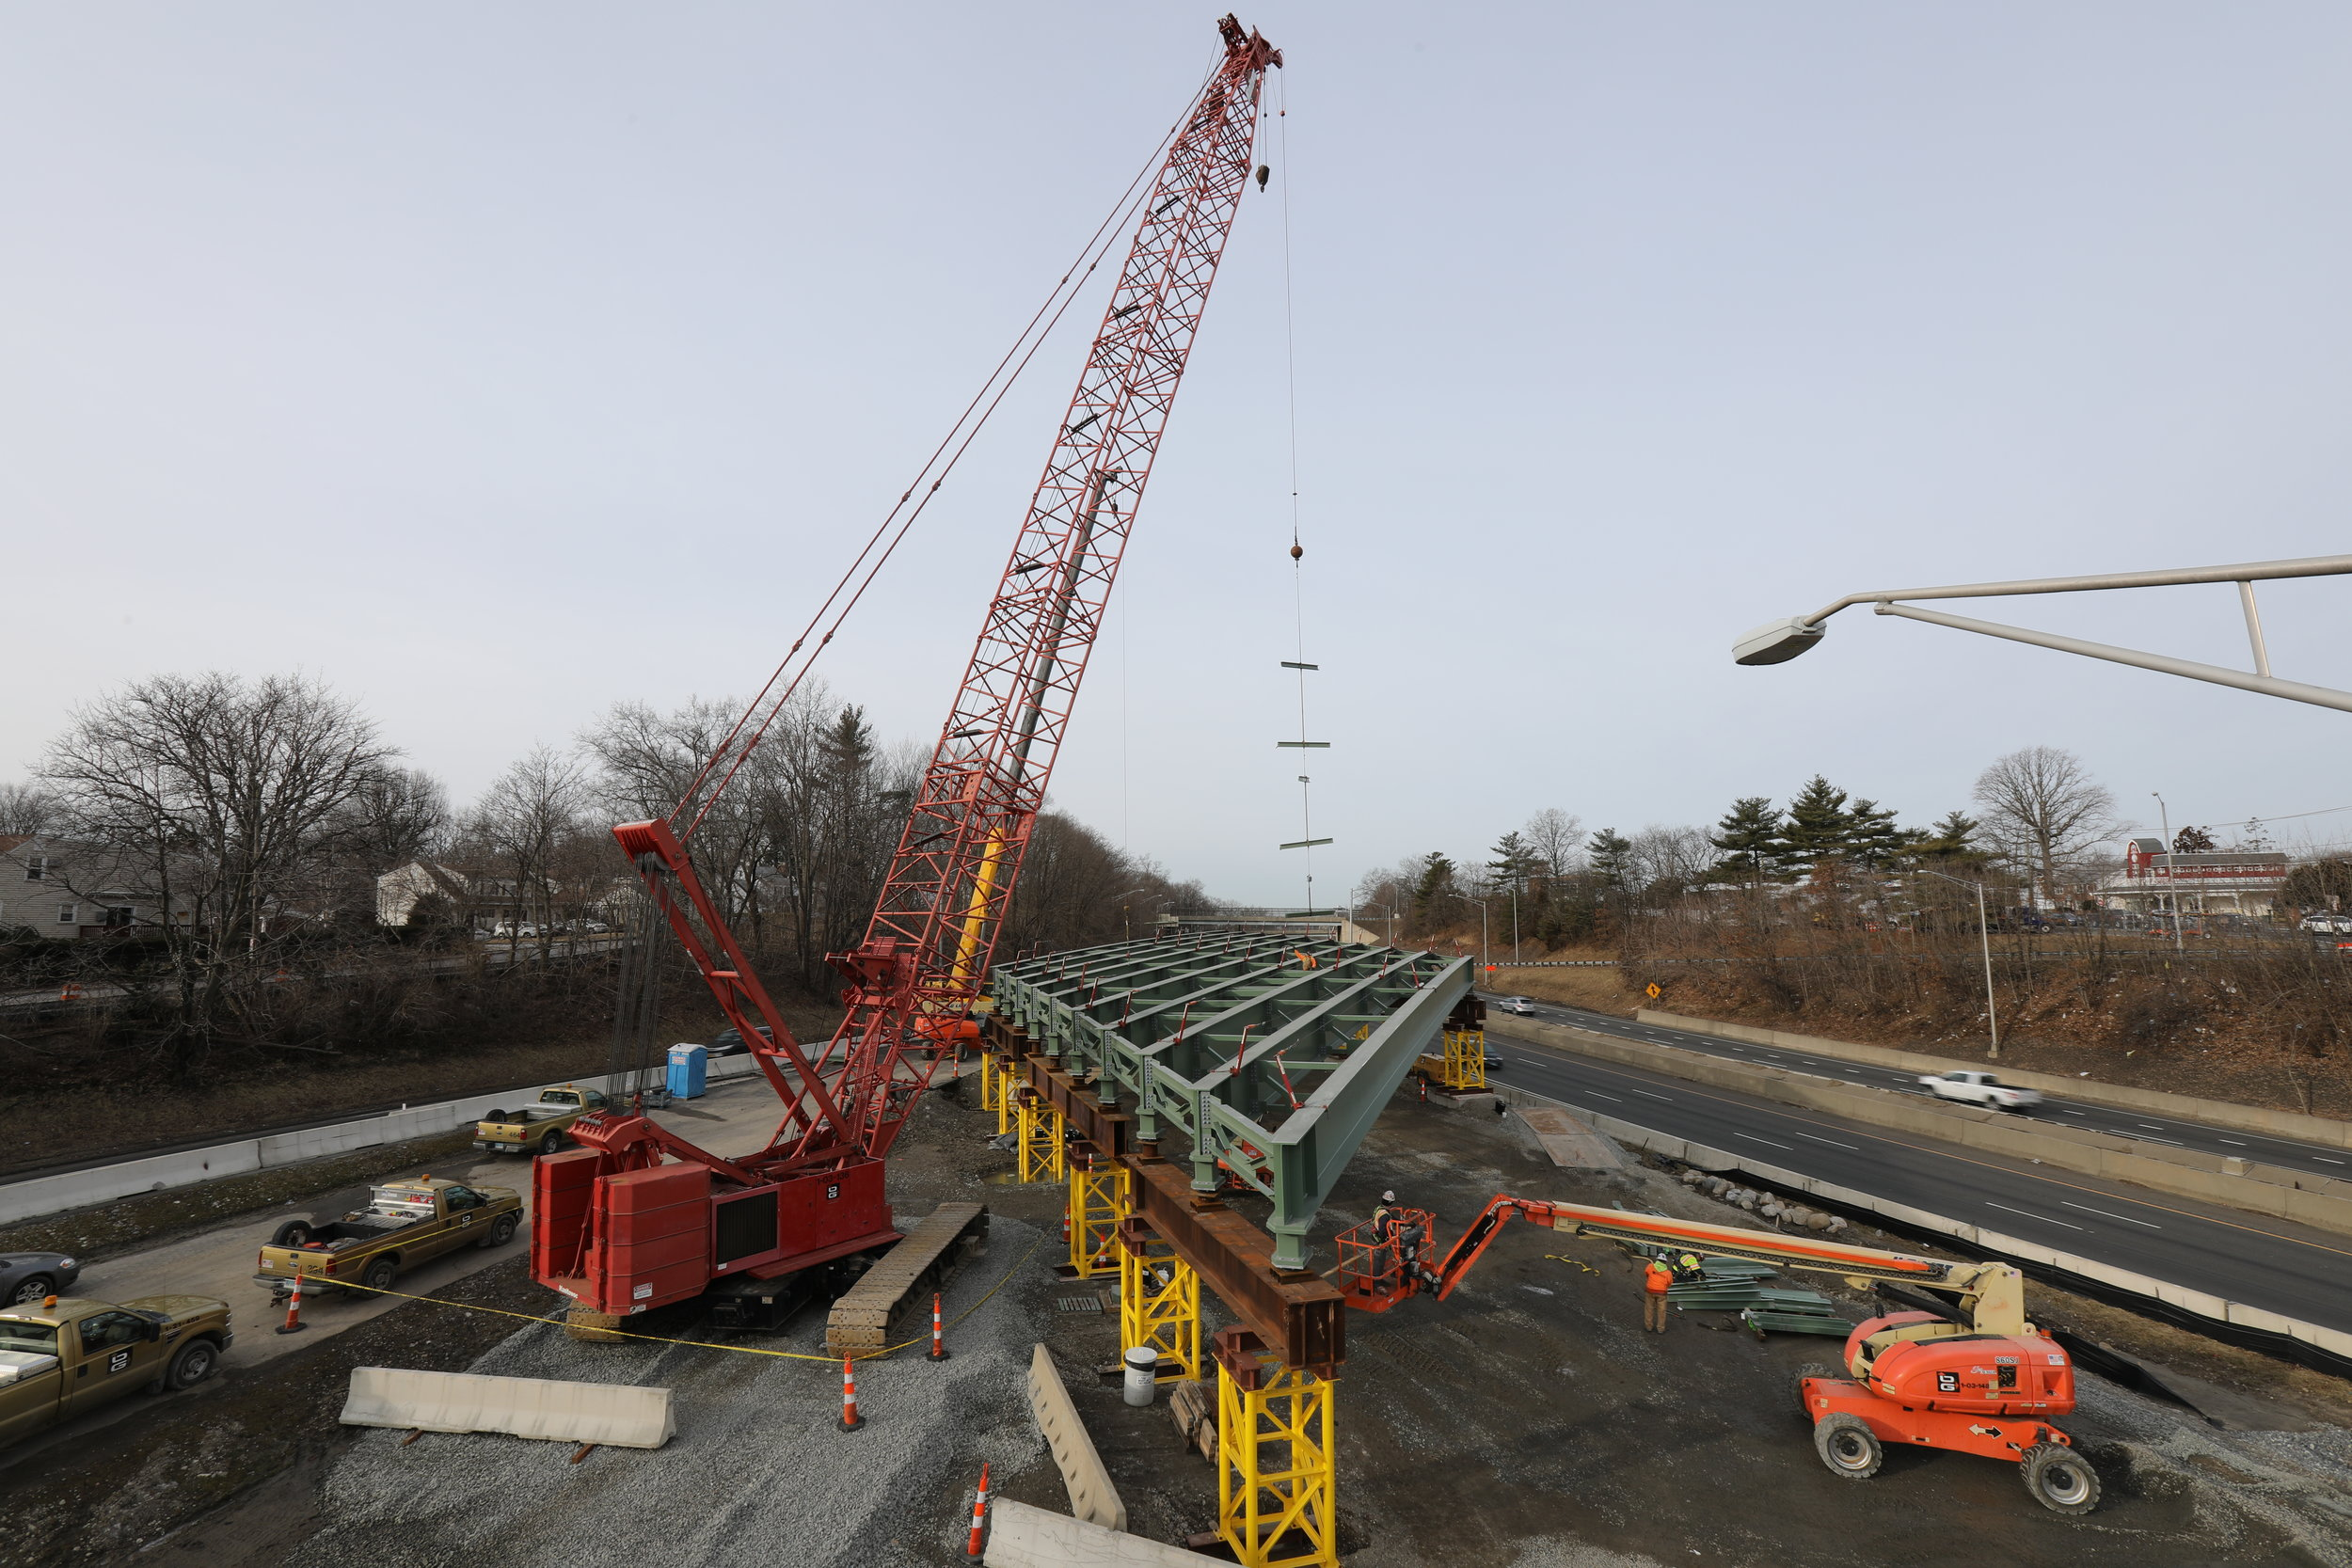 Crane lifts steel for new bridge span    2/23/2019 by Peter Venoutsos